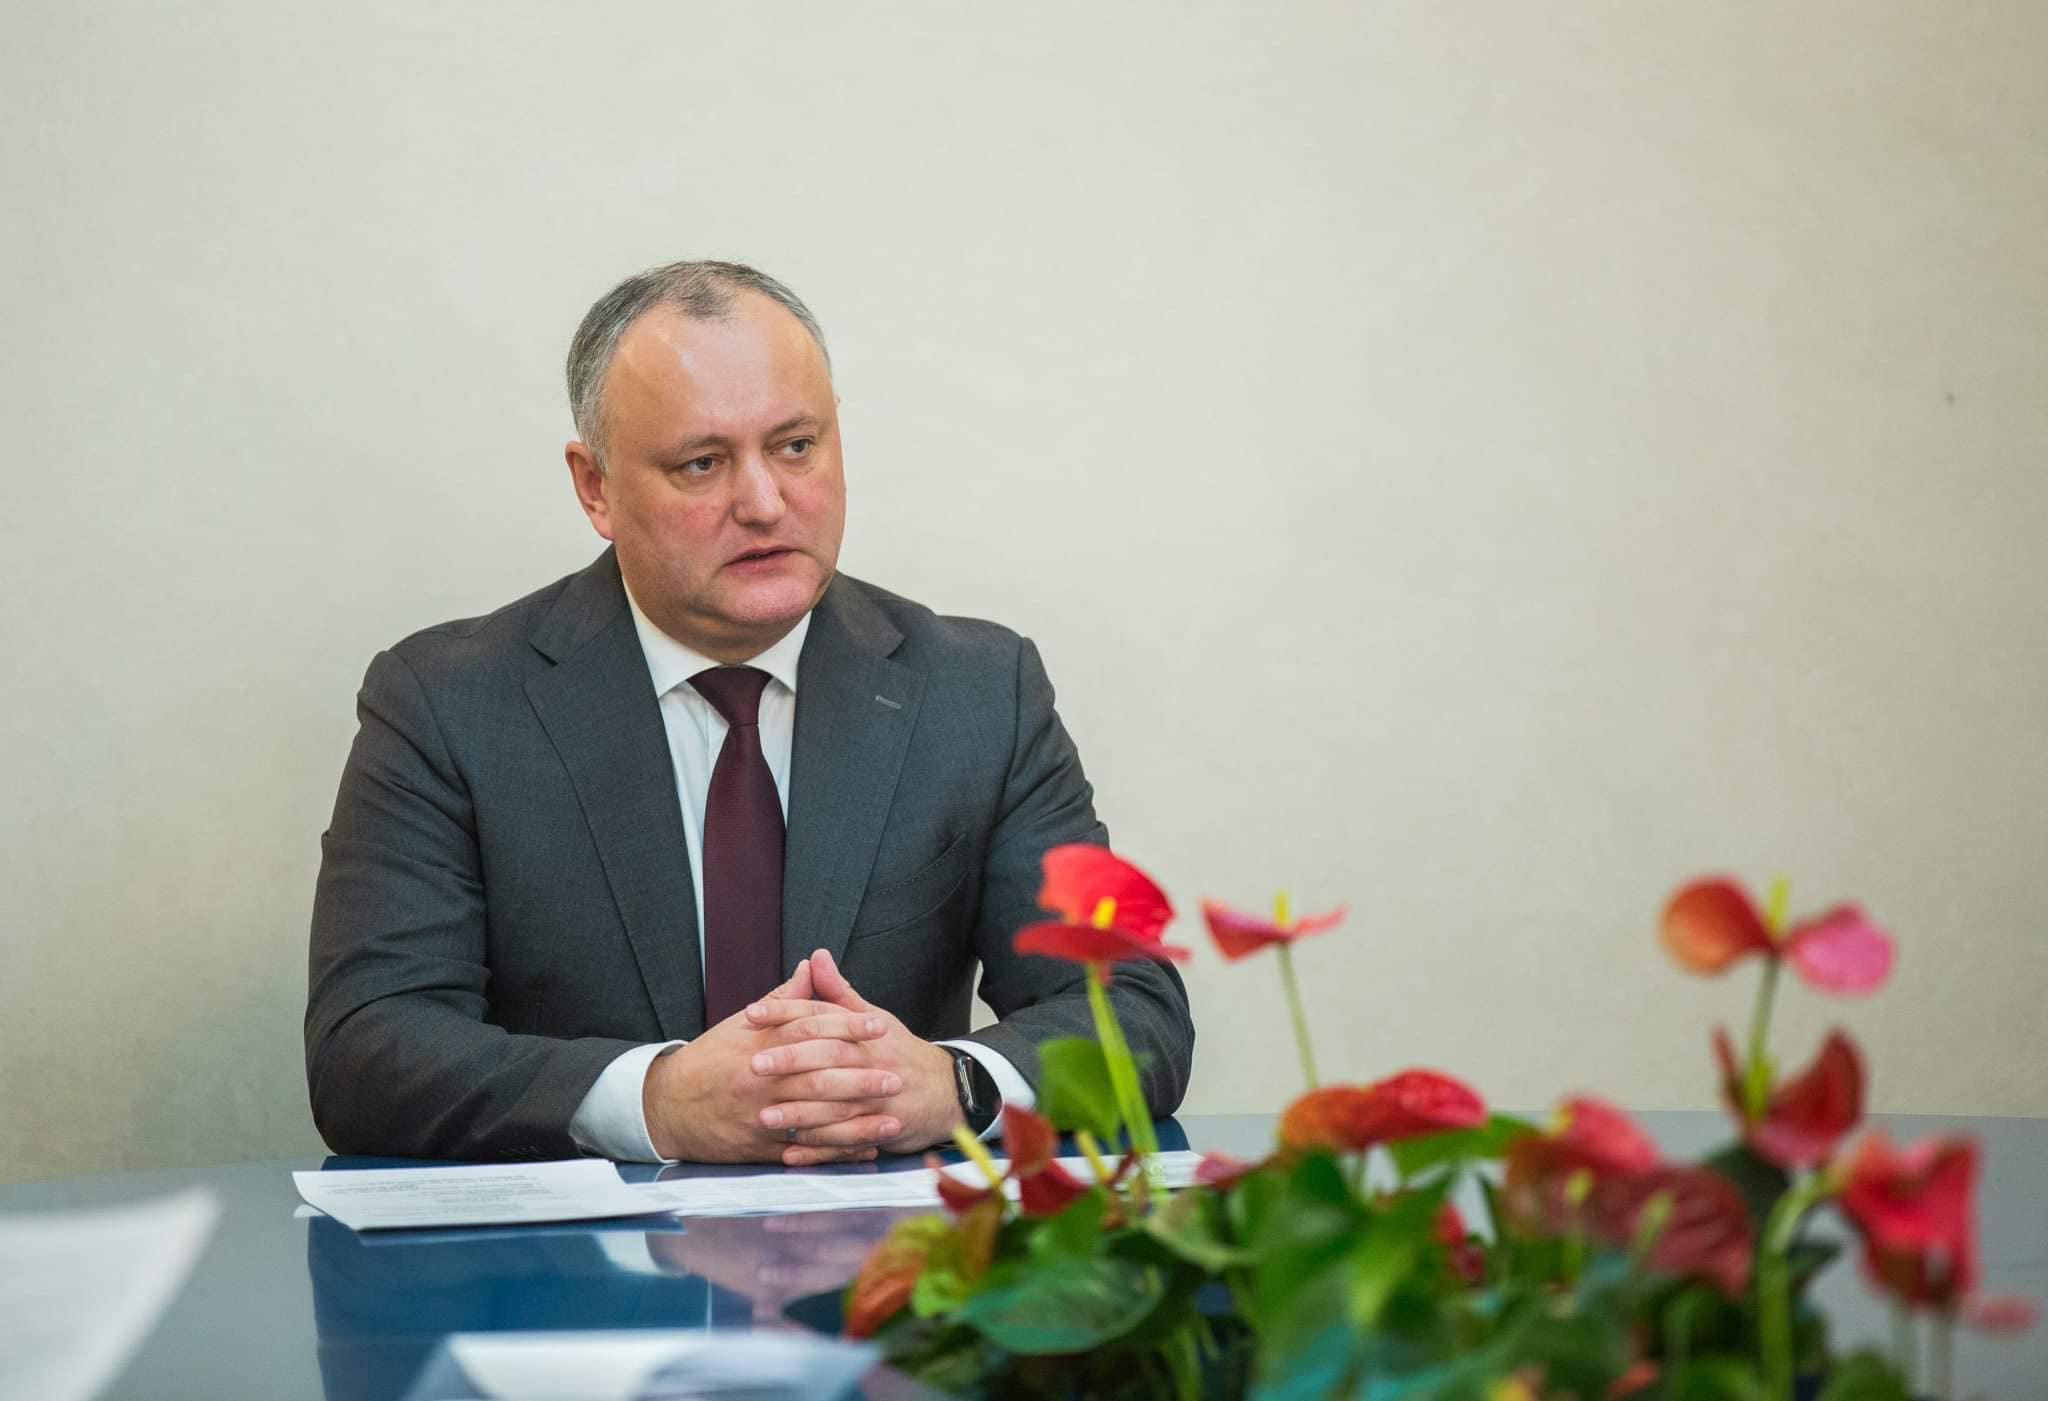 Preparation for the Year of the Family announced by the President